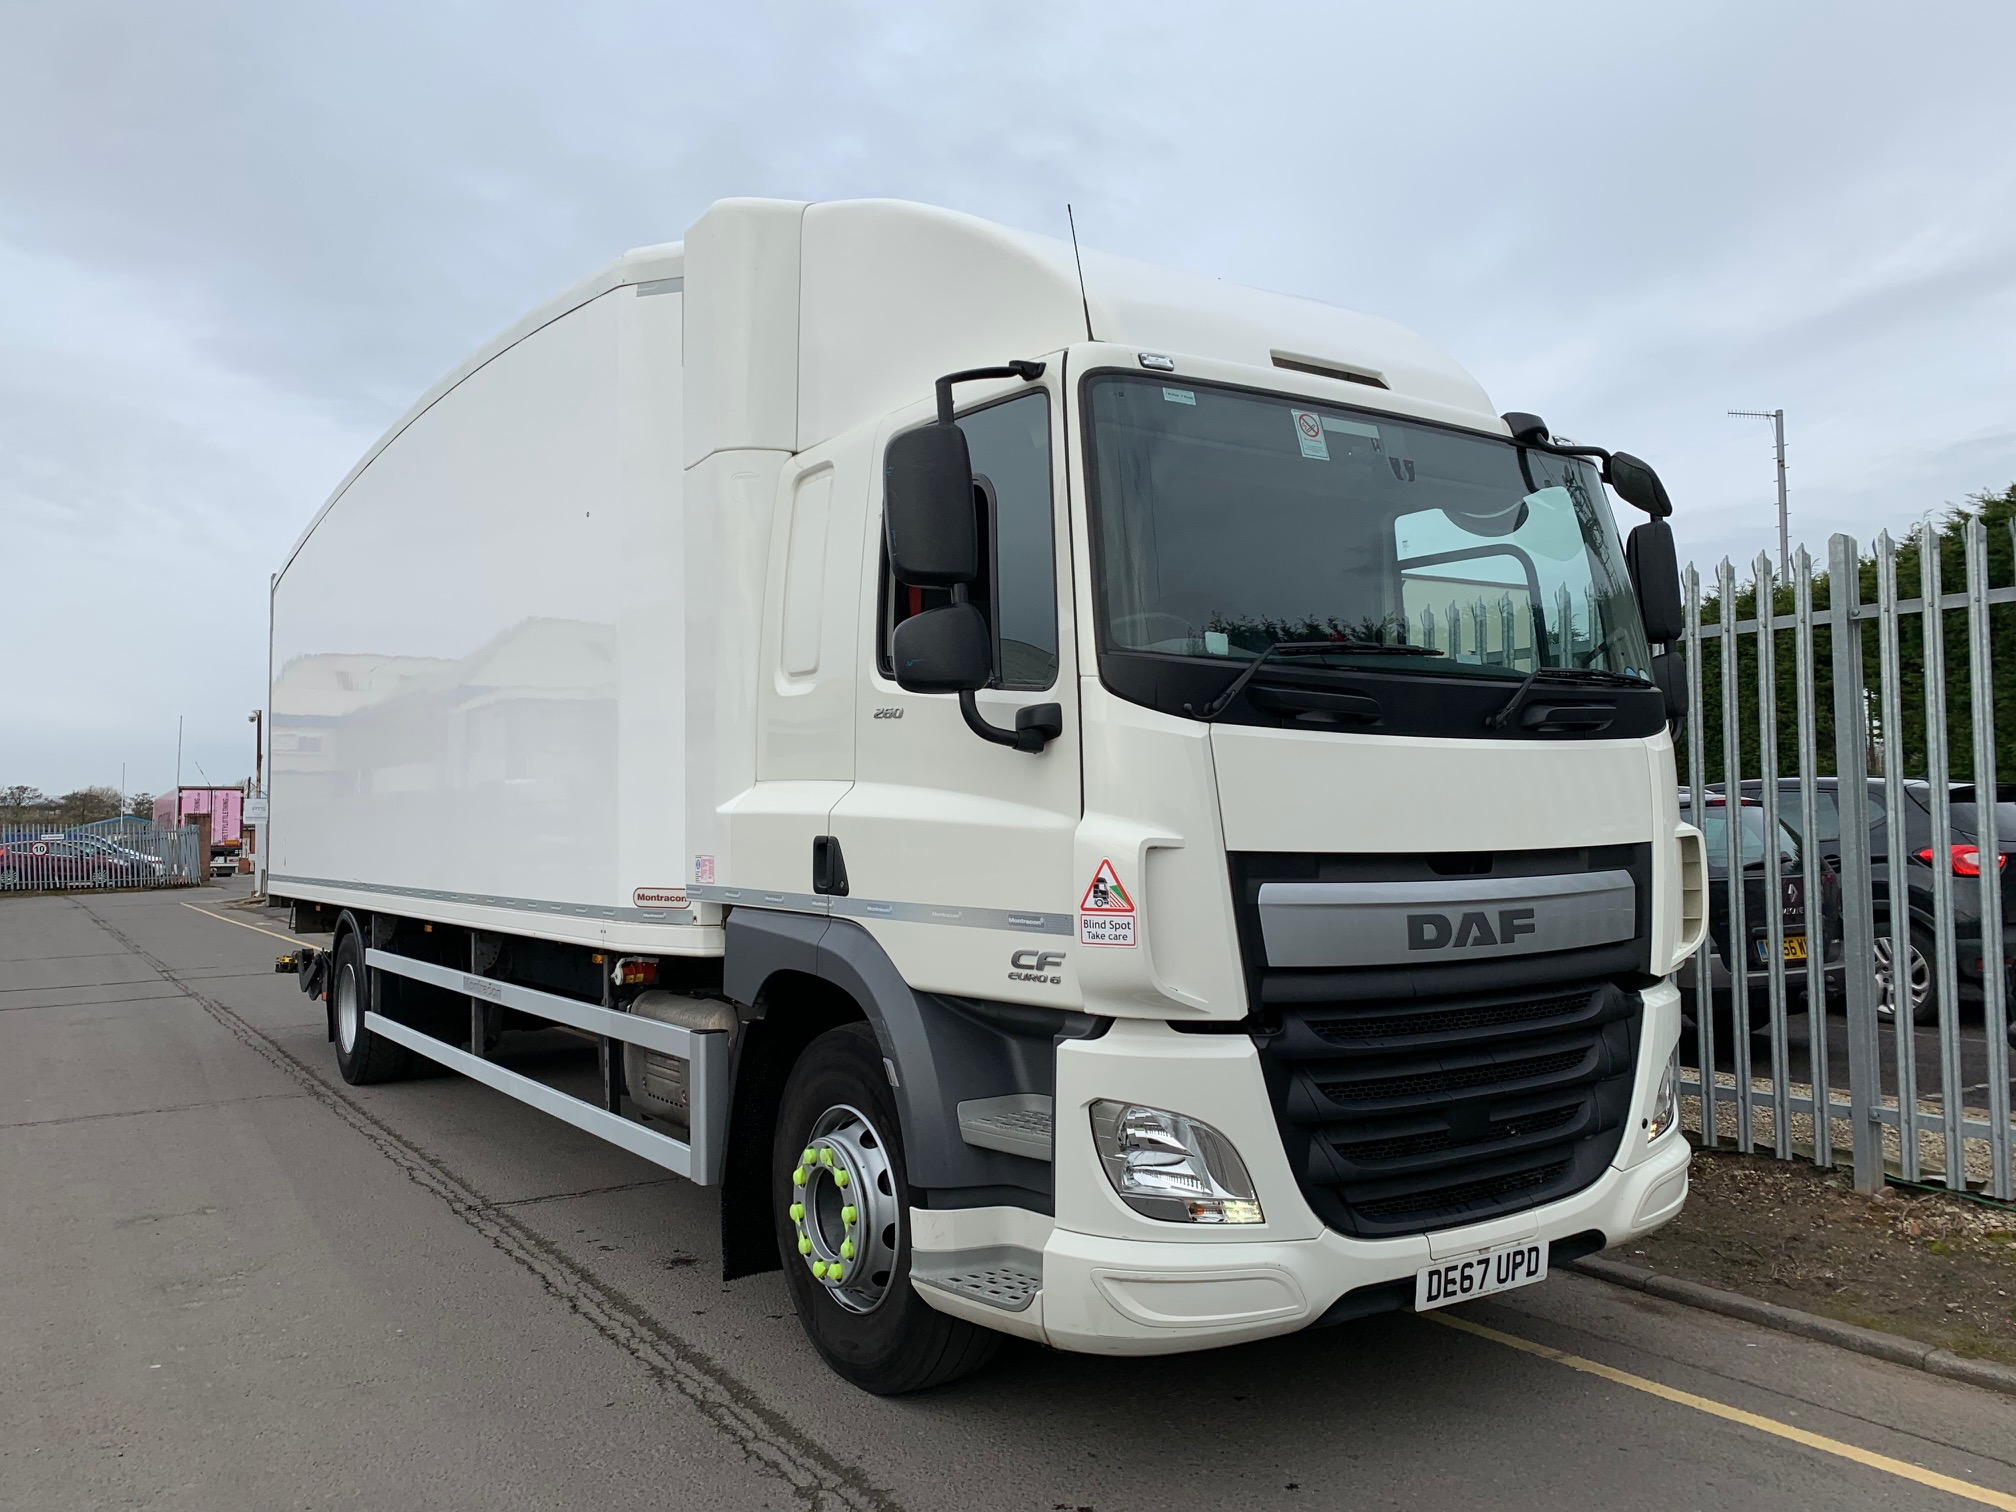 2017 (67) DAF CF Fridge Tailift. 18 Tonne, Carrier Engine, Dhollandia Tuckunder Tailift (1500KG Capacity), Single Sleeper Cab, Euro 6, AS Tronic Automatic Gearbox, 260bhp, Low Mileage, Choice & Warranty Available.